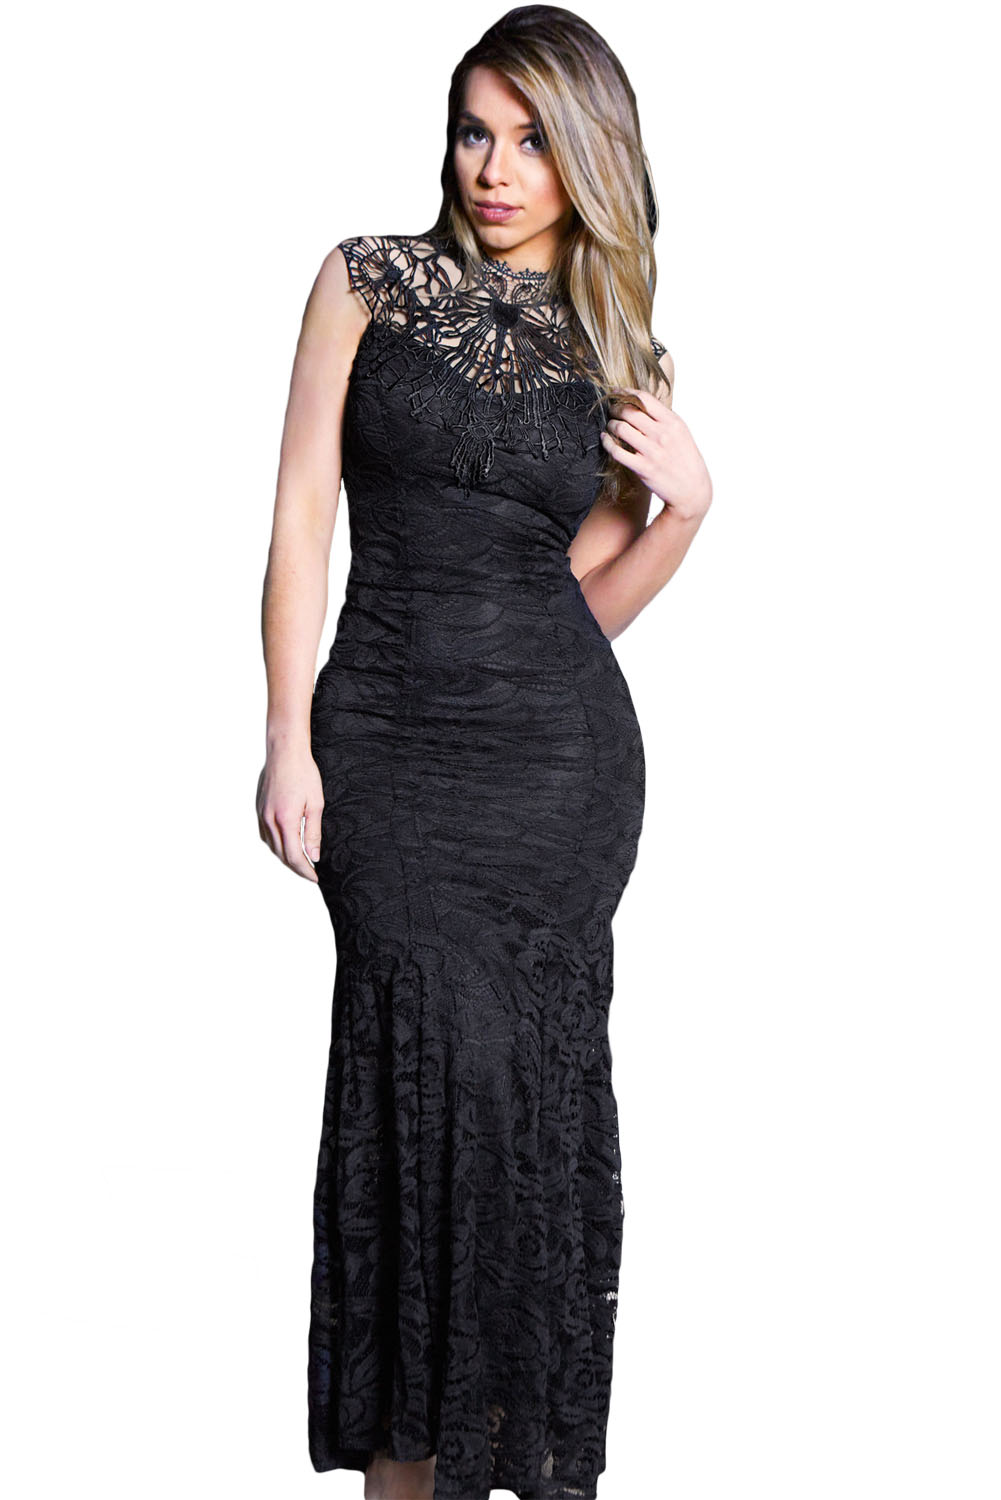 Black Lace Sleeveless Long Mermaid